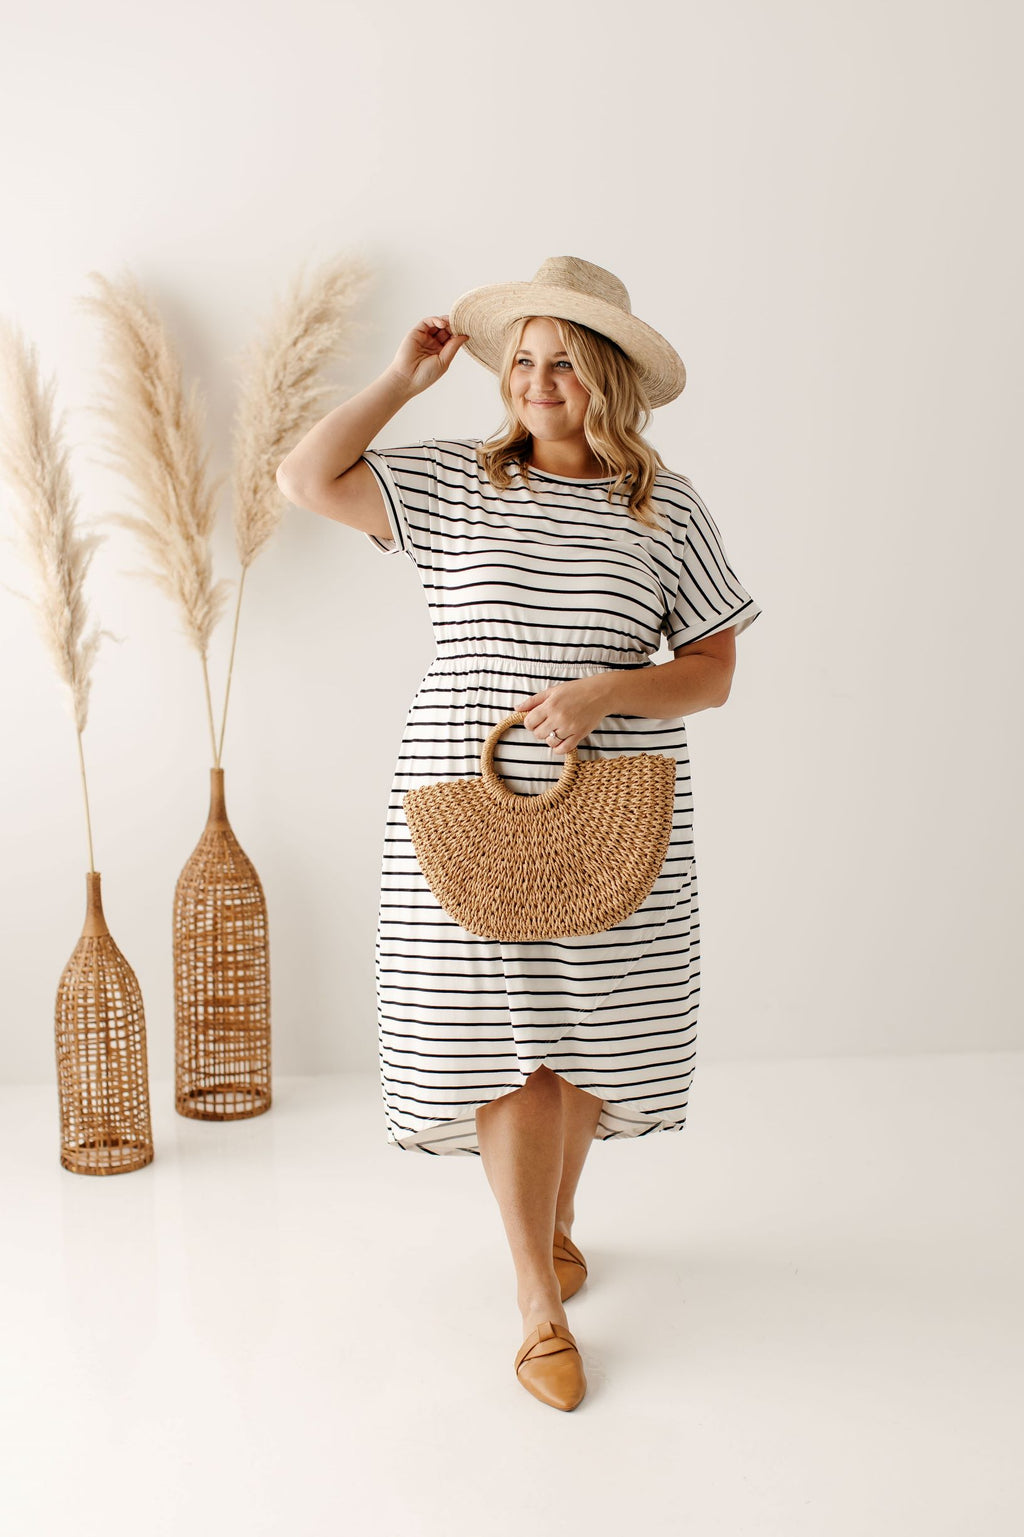 PLUS 'Kelly' Midi Dress in Ivory/Black Stripe